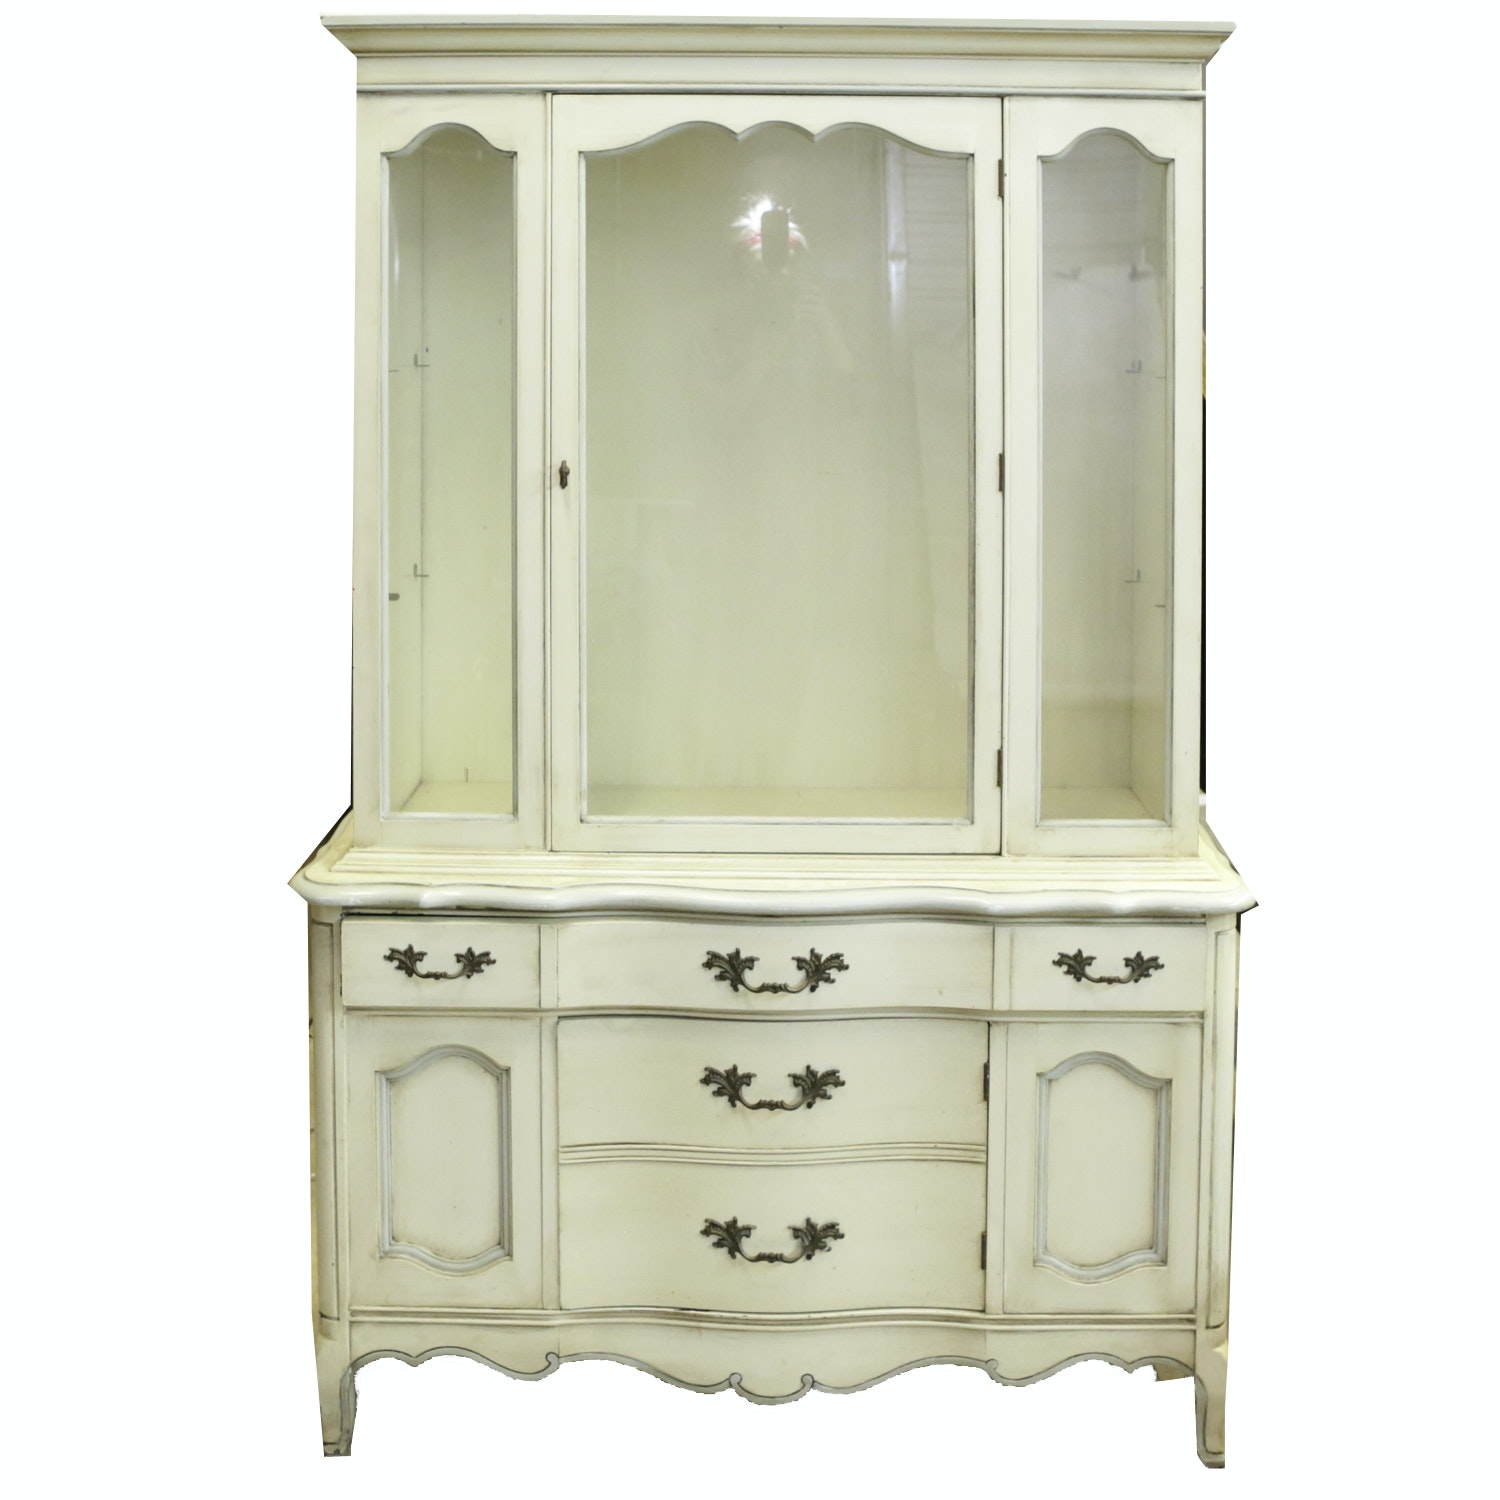 French Provincial Sideboard Display Cabinet